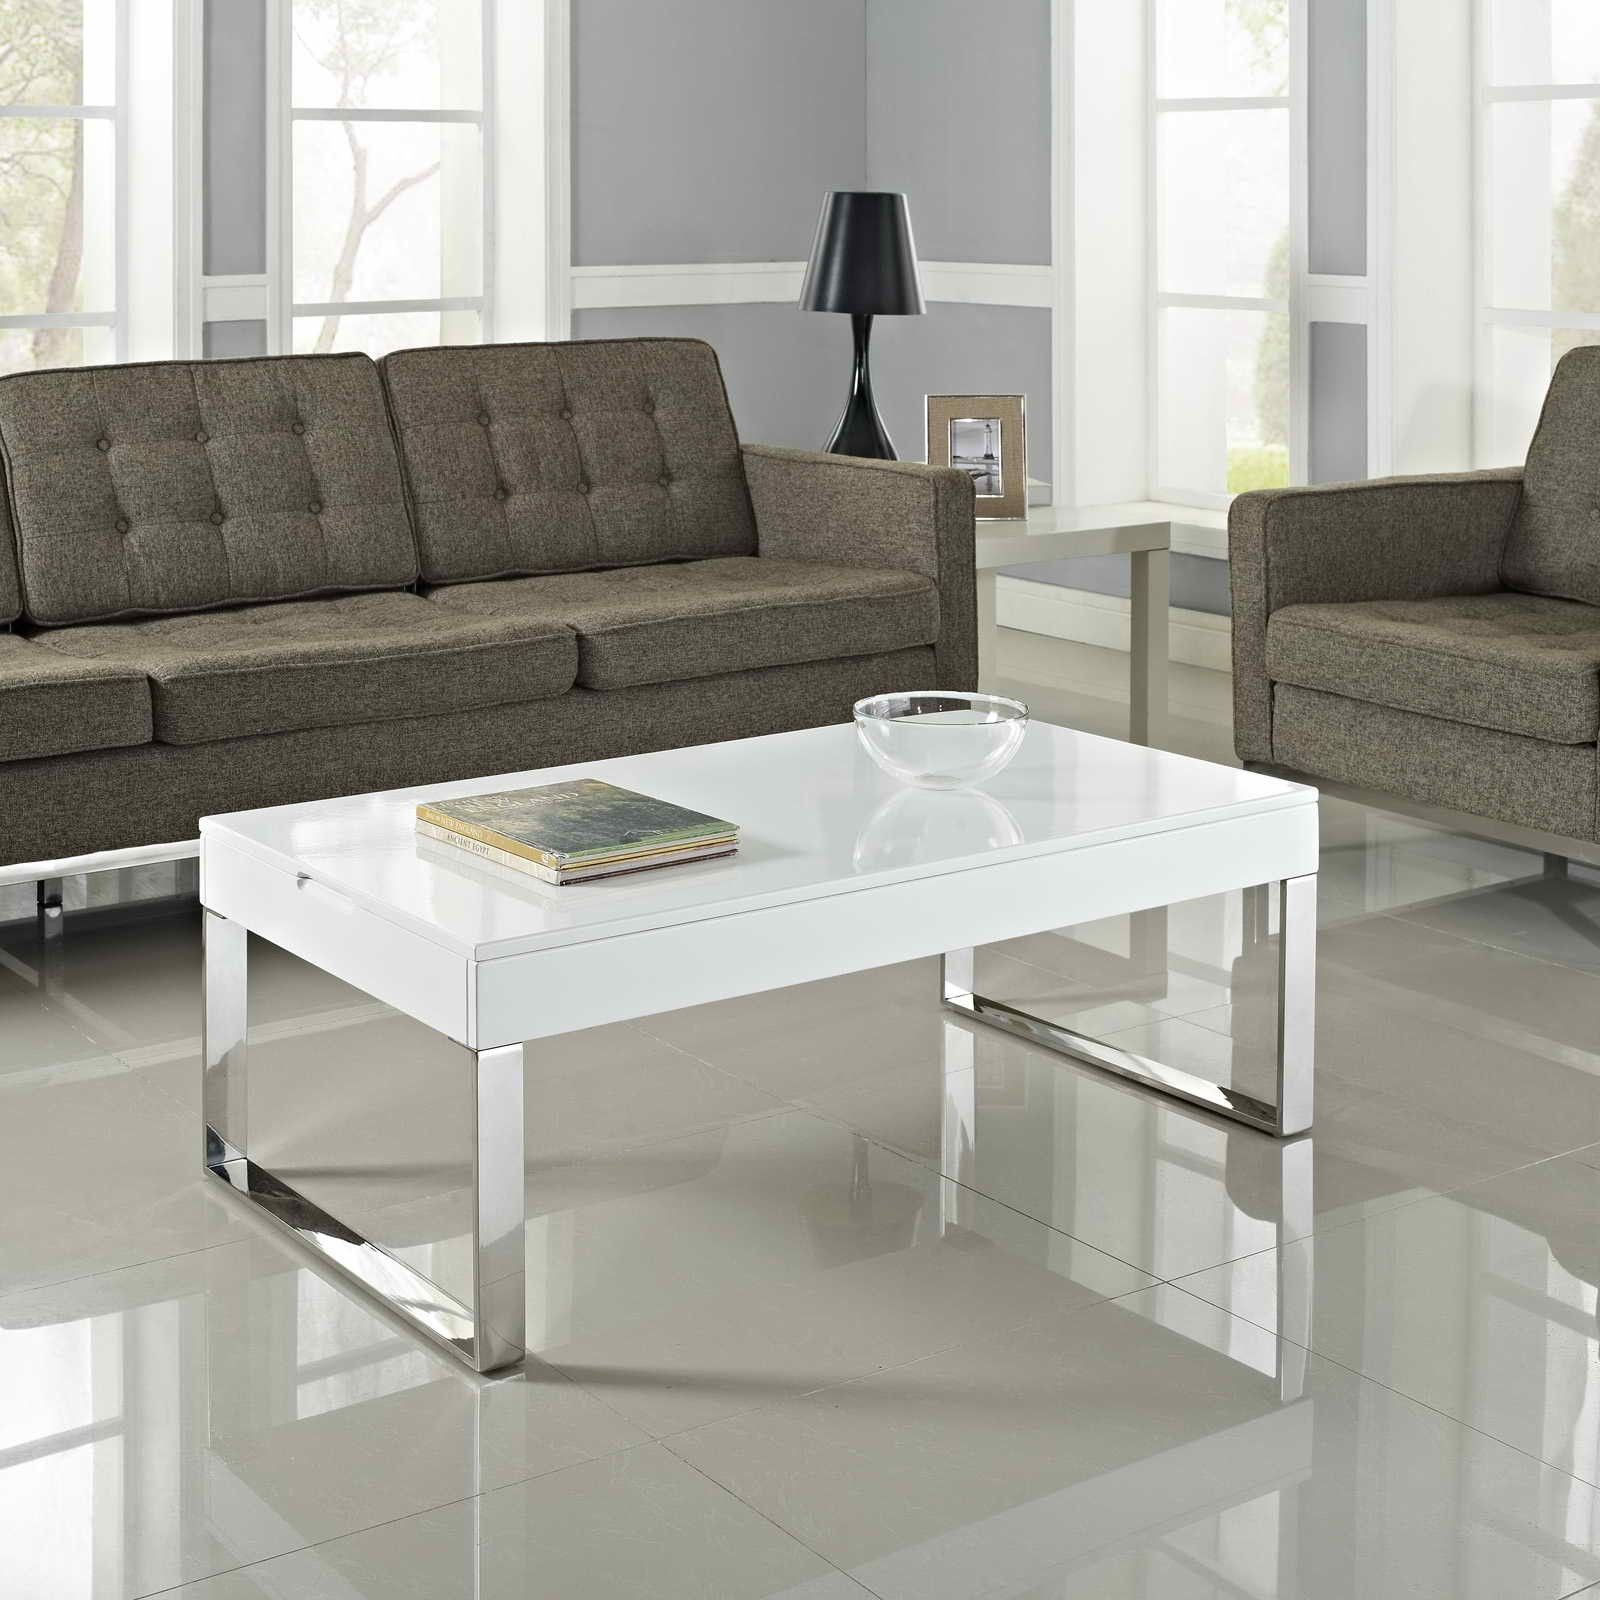 Image result for white gloss and silver leg coffee table